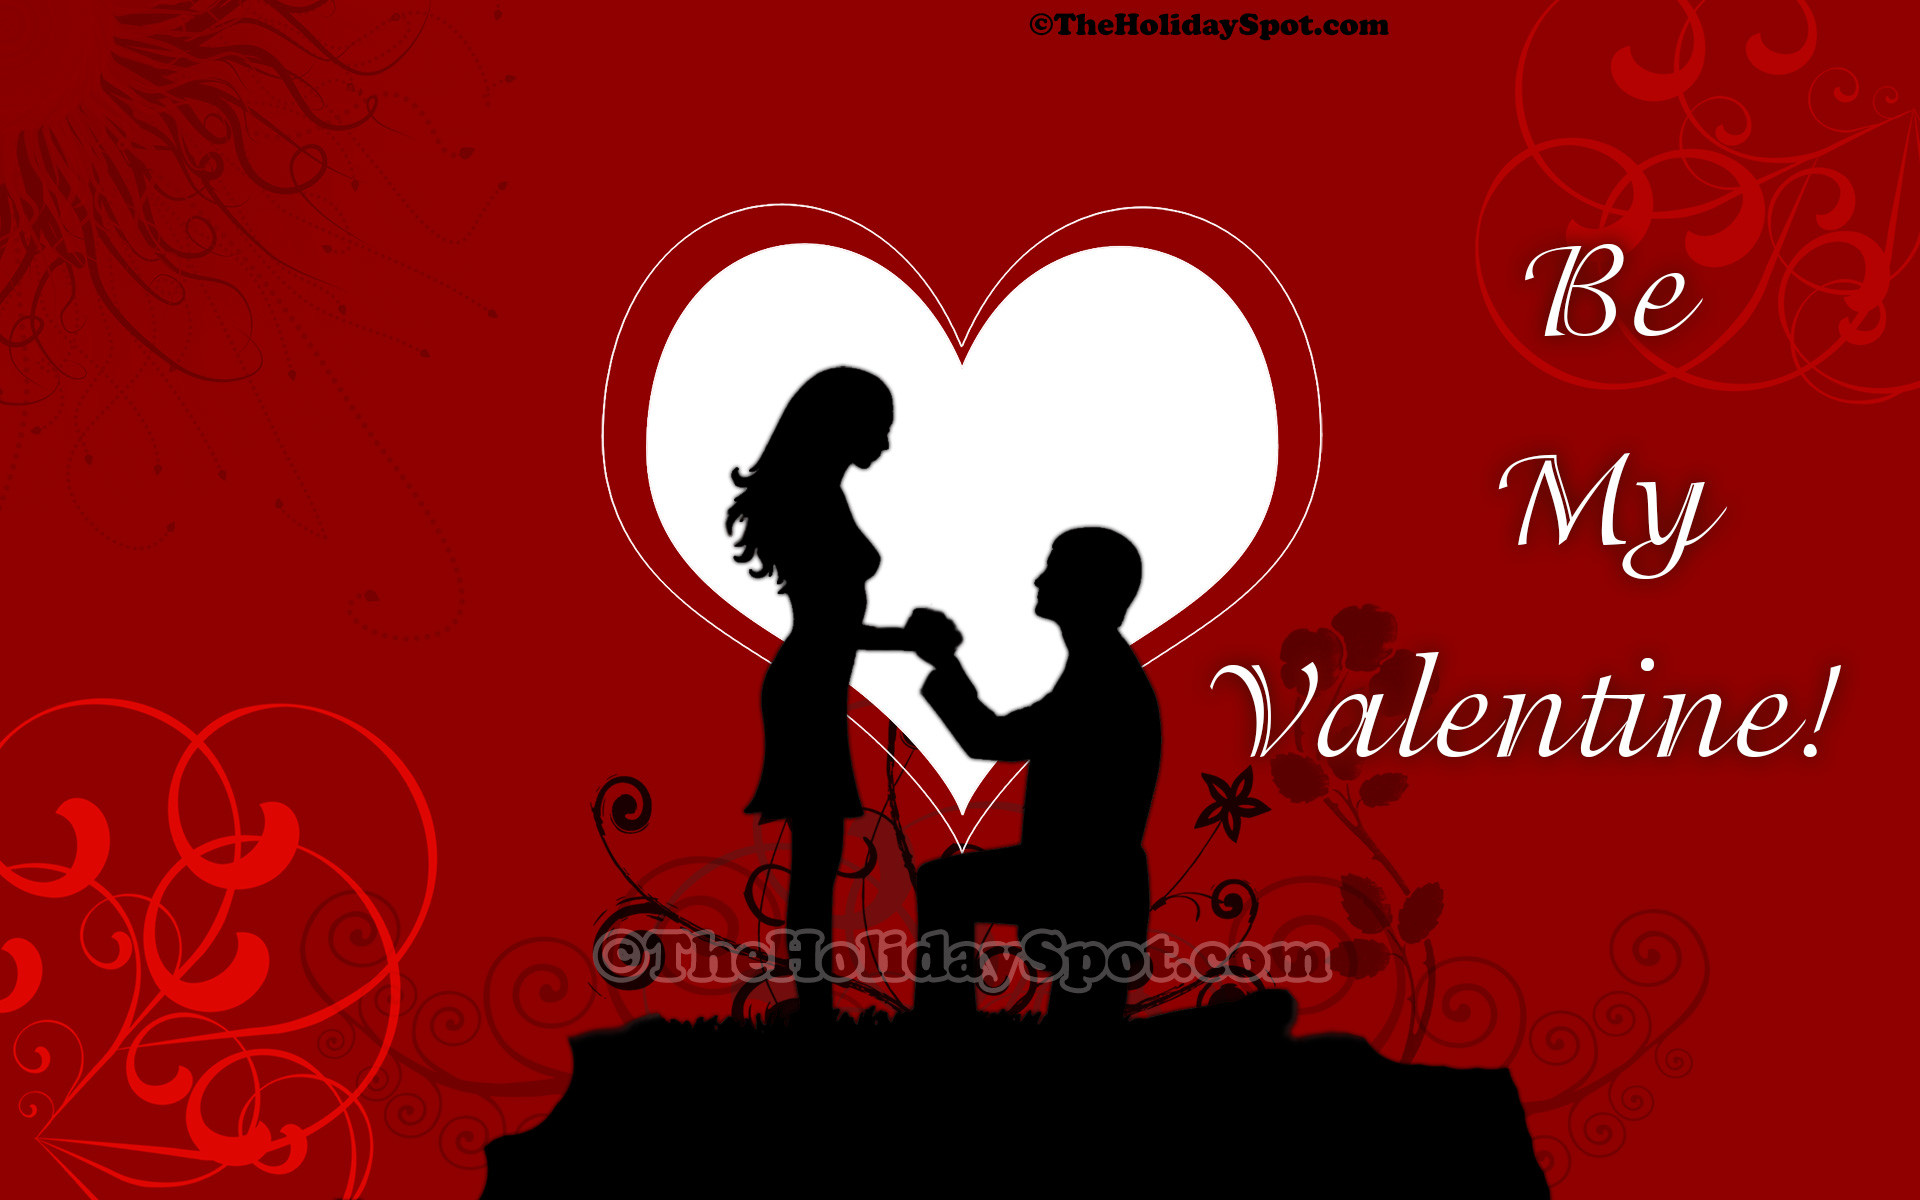 Valentine's Day wallpaper themed with proposal